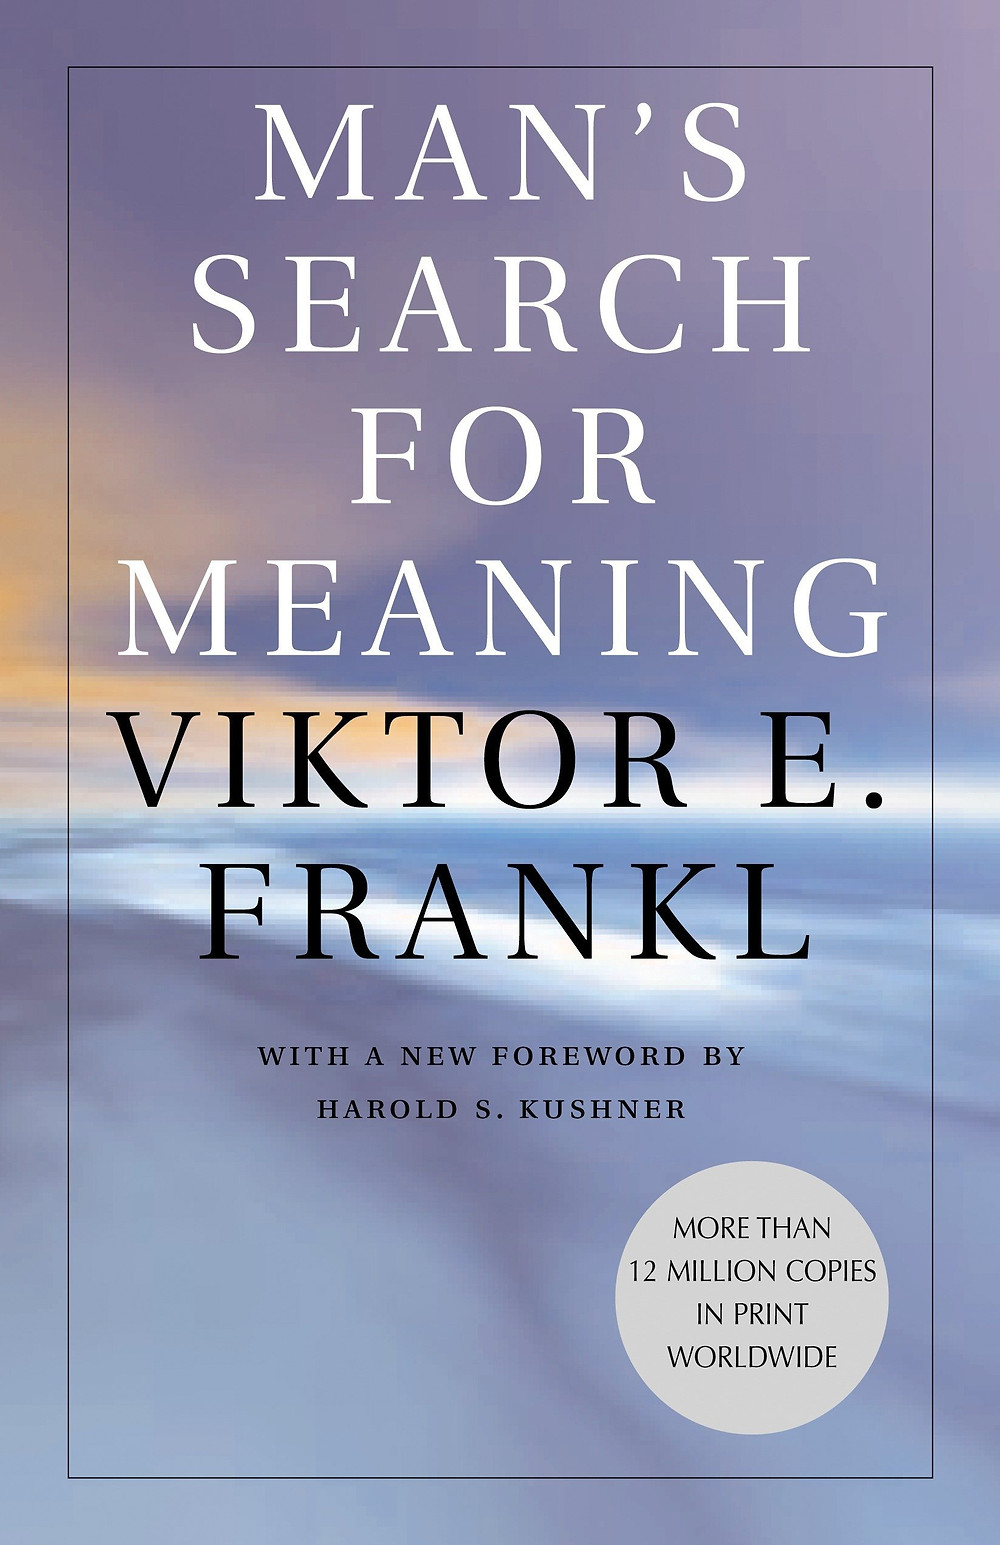 The cover of Viktor Frankl's Man's Search for Meaning